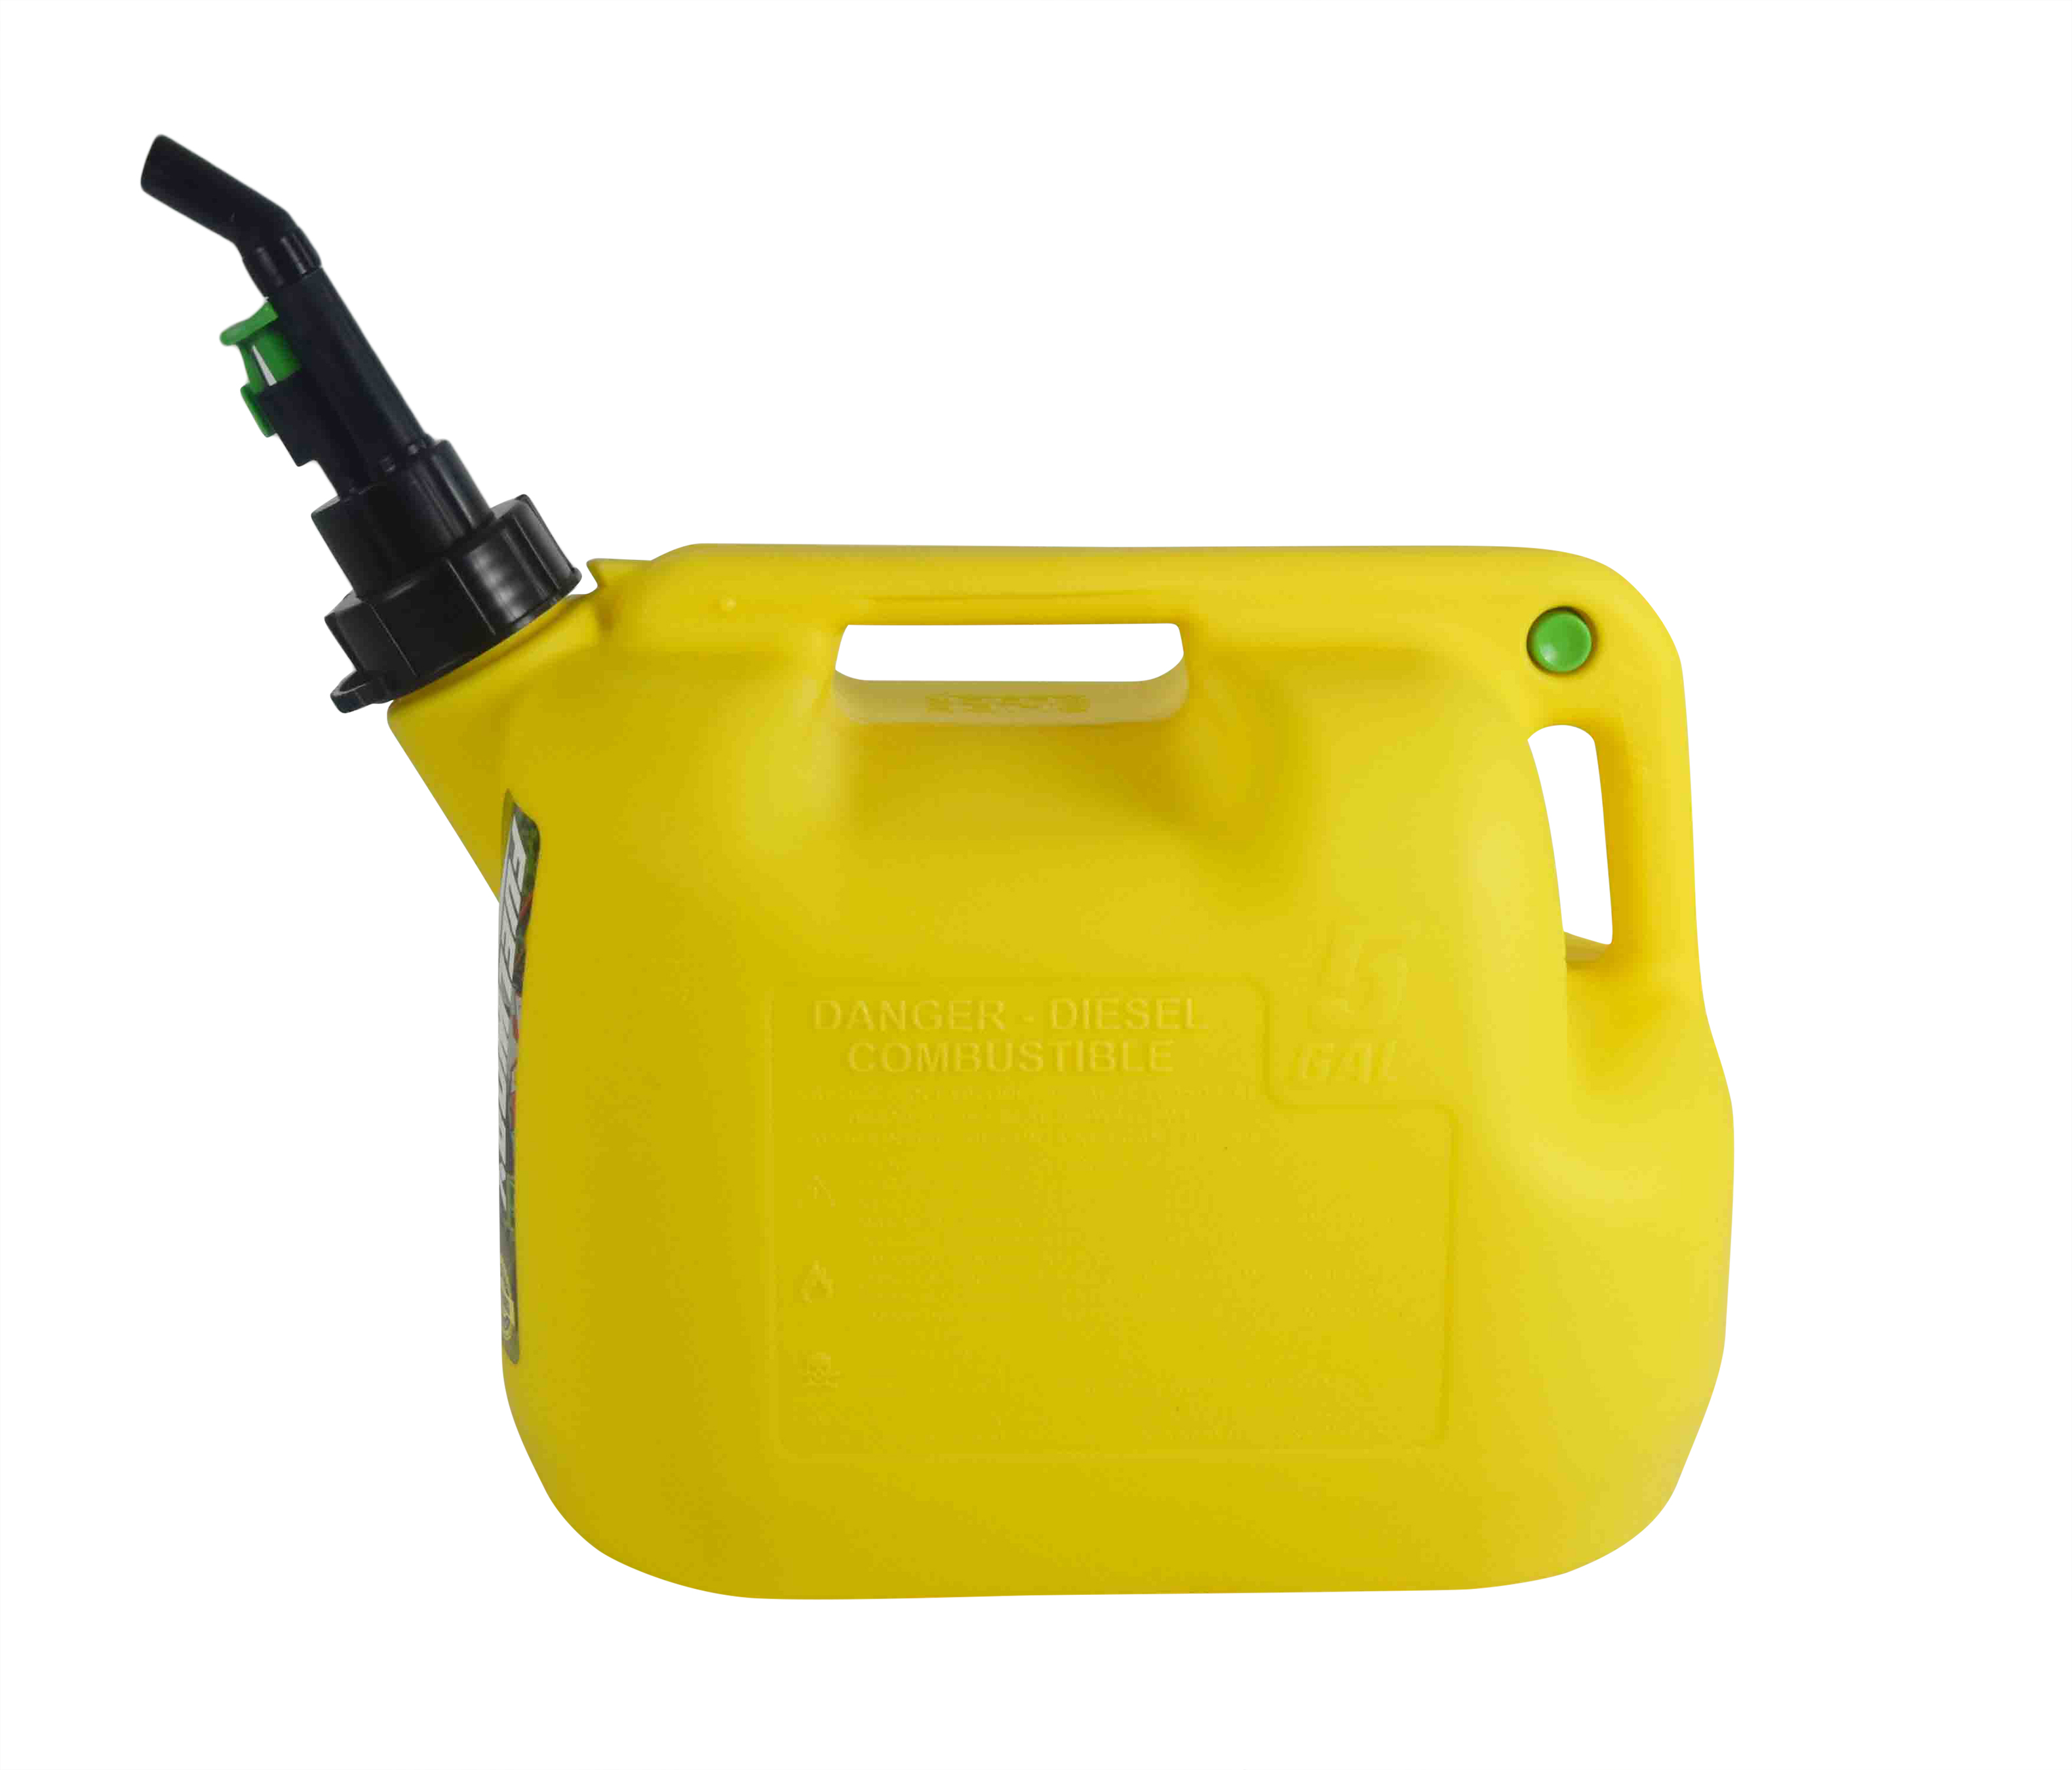 Fuelworx-Yellow-5-Gallon-Stackable-Fast-Pour-Diesel-Fuel-Cans-CARB-Compliant-Made-in-The-USA-5-Gallon-Diesel-Cans-Single-image-4